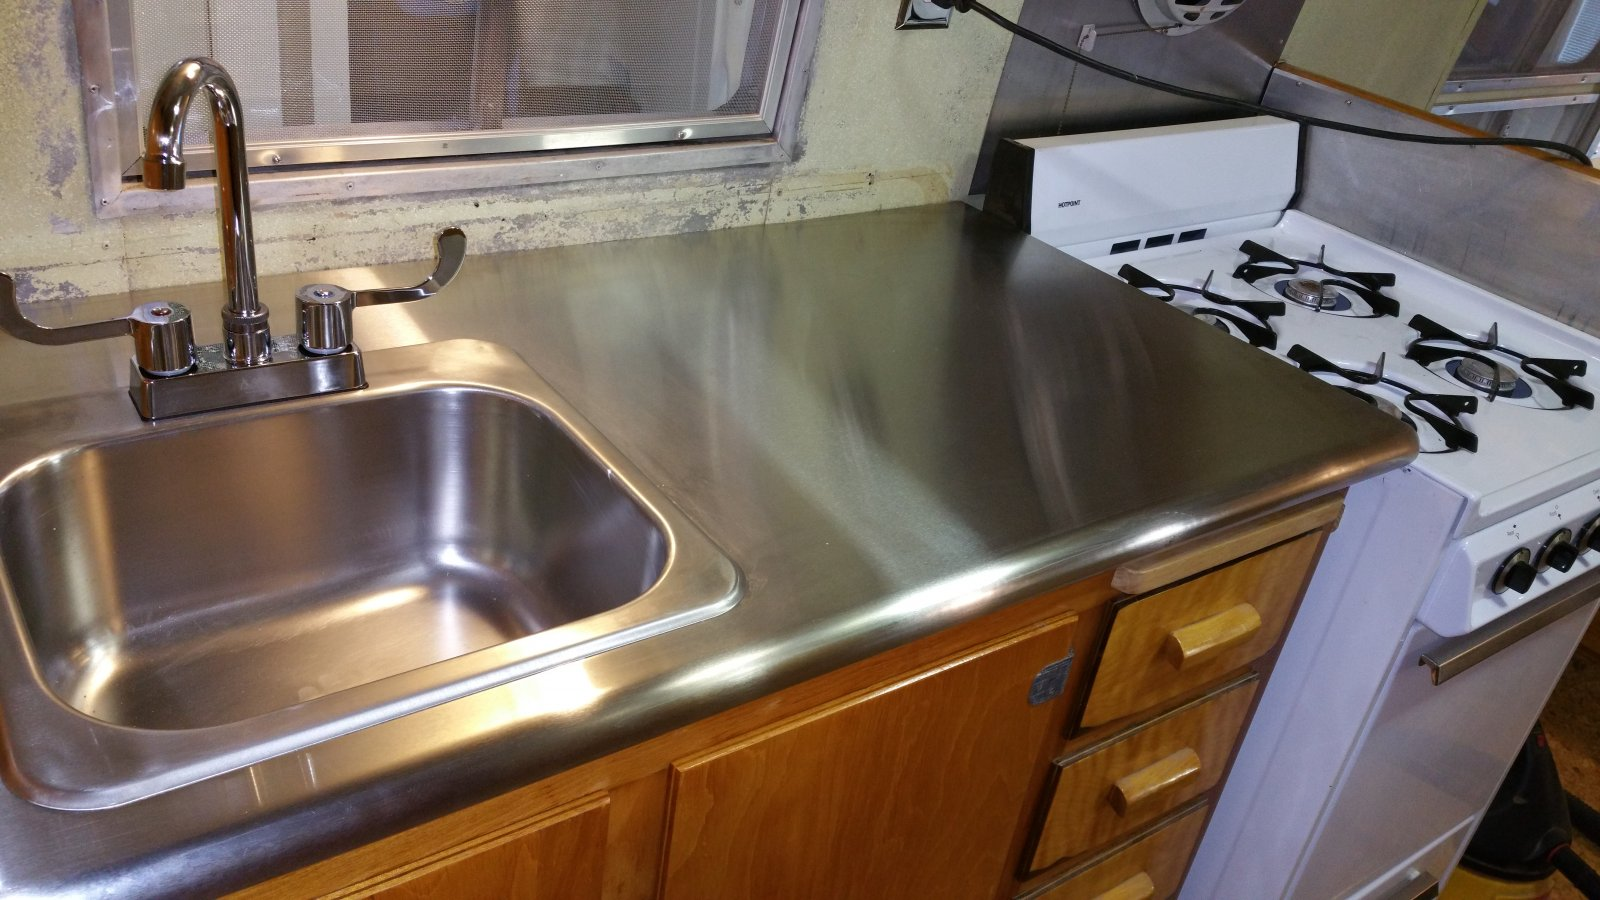 Click image for larger version  Name:Countertop2.jpg Views:104 Size:230.9 KB ID:250652